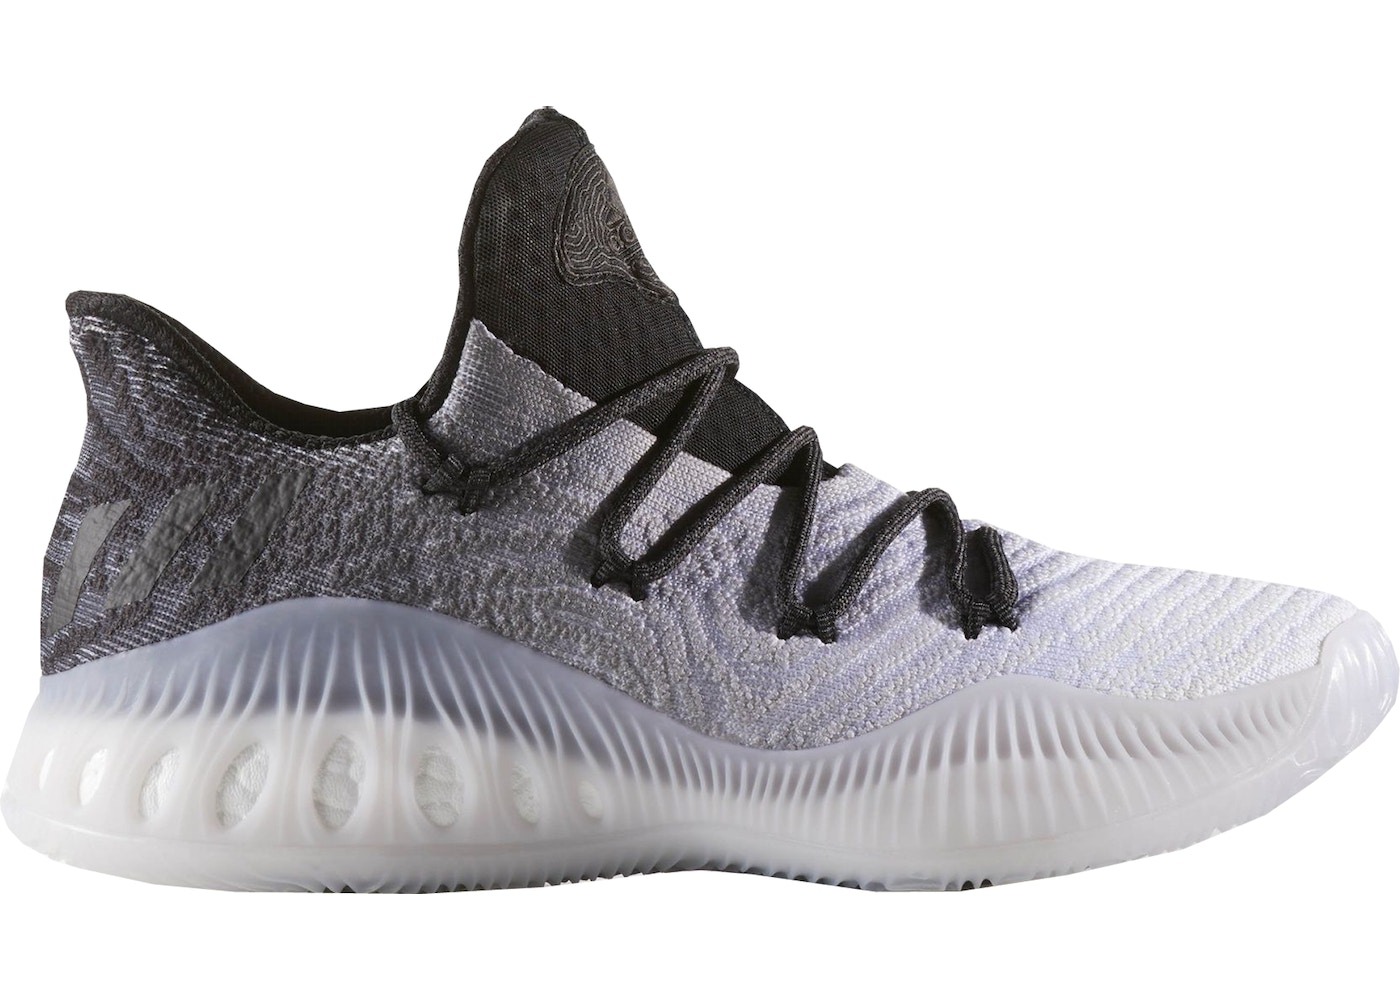 9d642e0a63c4 Sell. or Ask. Size  9.5. View All Bids. adidas Crazy Explosive 2017 Low  Gradient